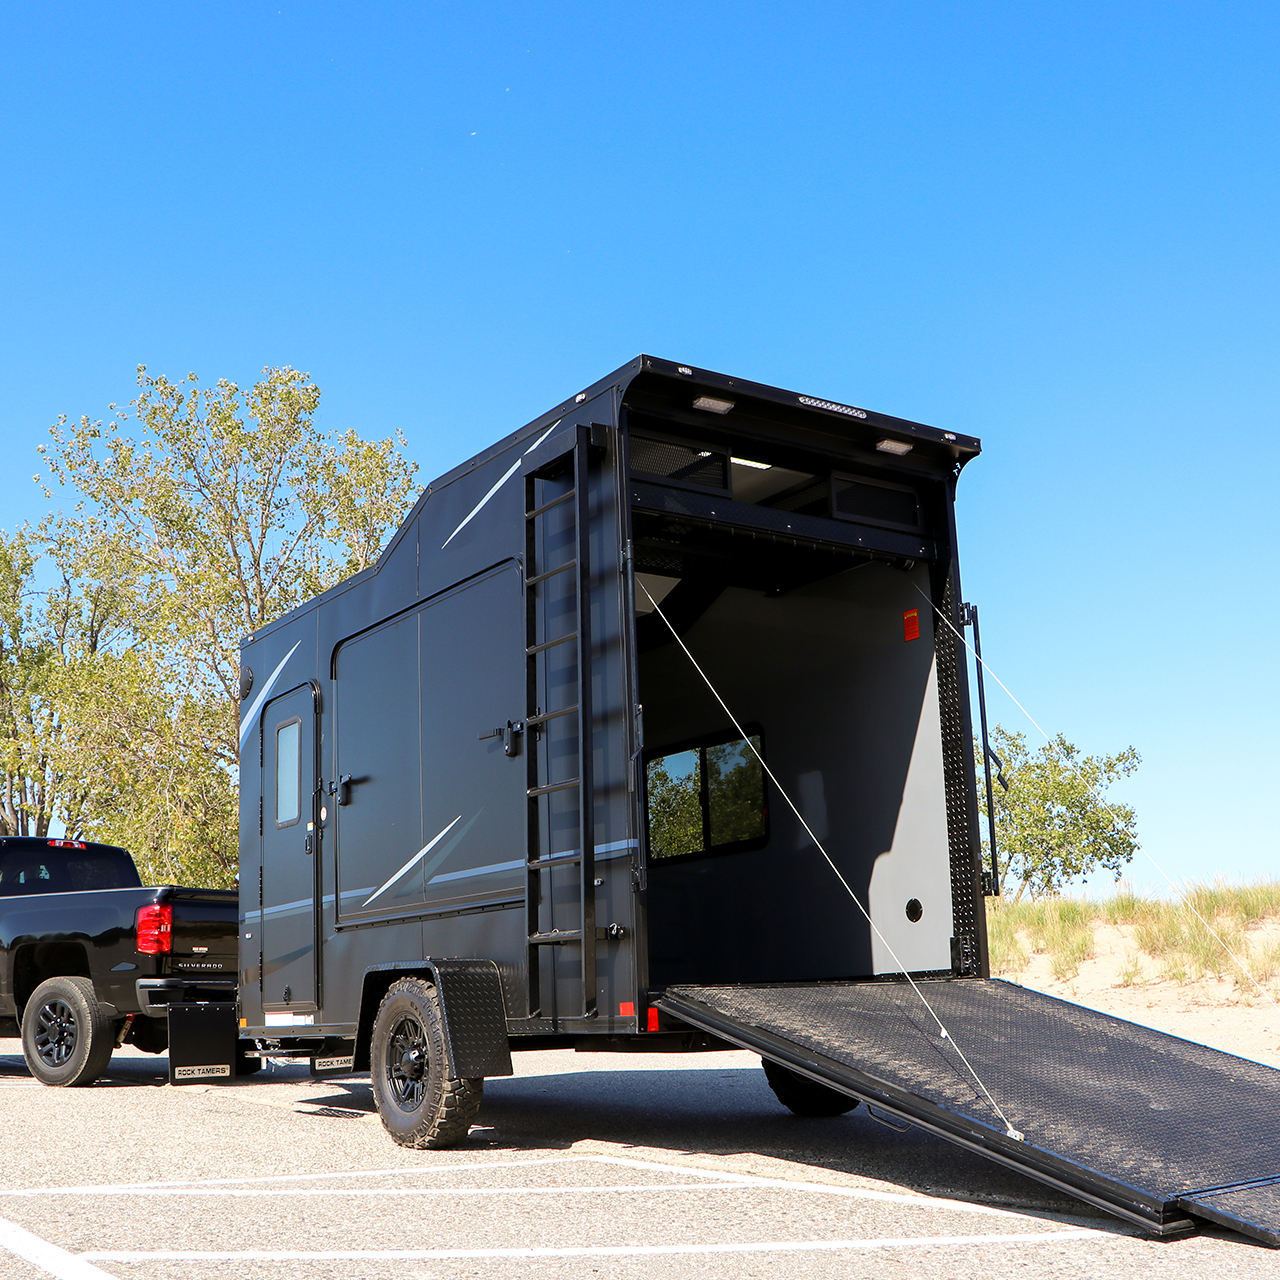 Vision - Auto Hauler - Landscaping Cargo Trailer - Customization - LOOK Trailers